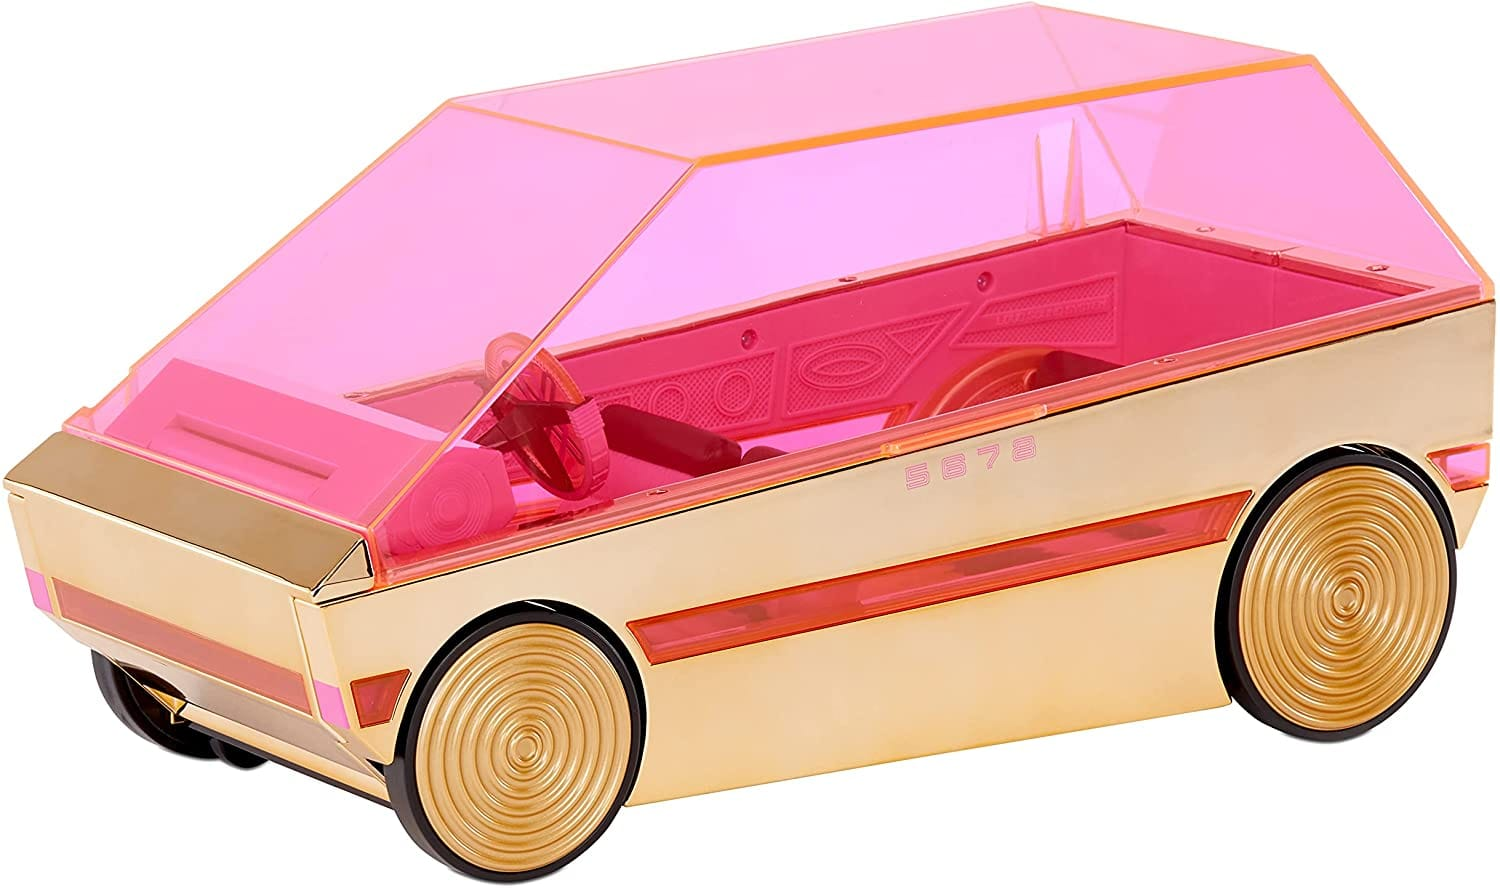 LOL Surprise 3-in-1 Party Cruiser Car with Surprise Pool, Dance Floor, Magic Black Lights $22.24 Target / Amazon